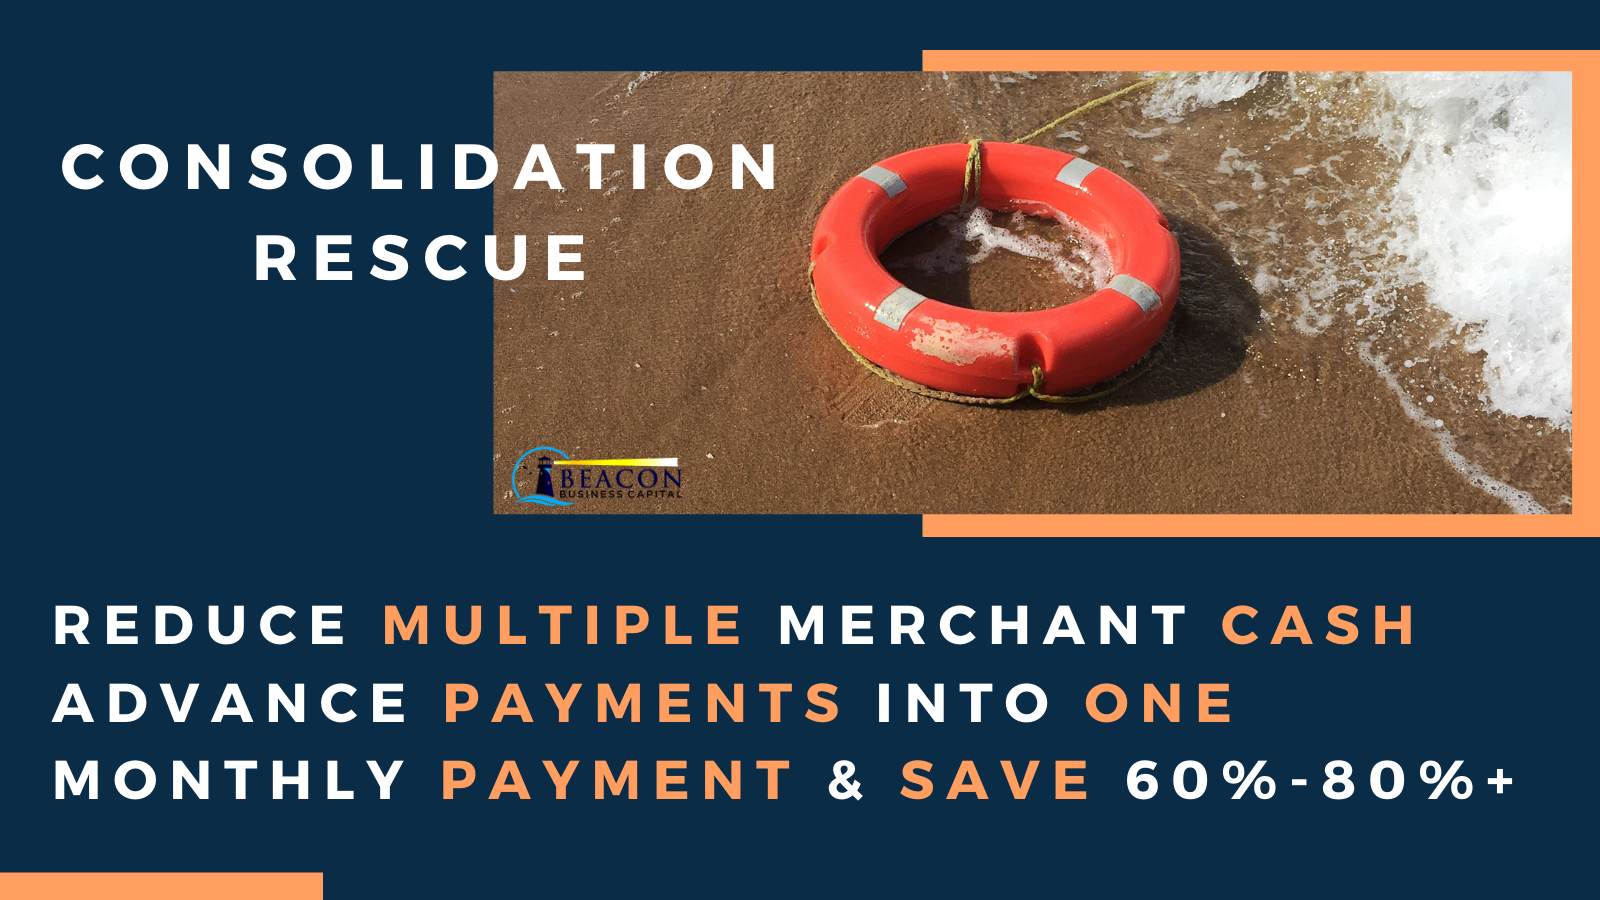 Life Preserver on beach_consolidation rescue